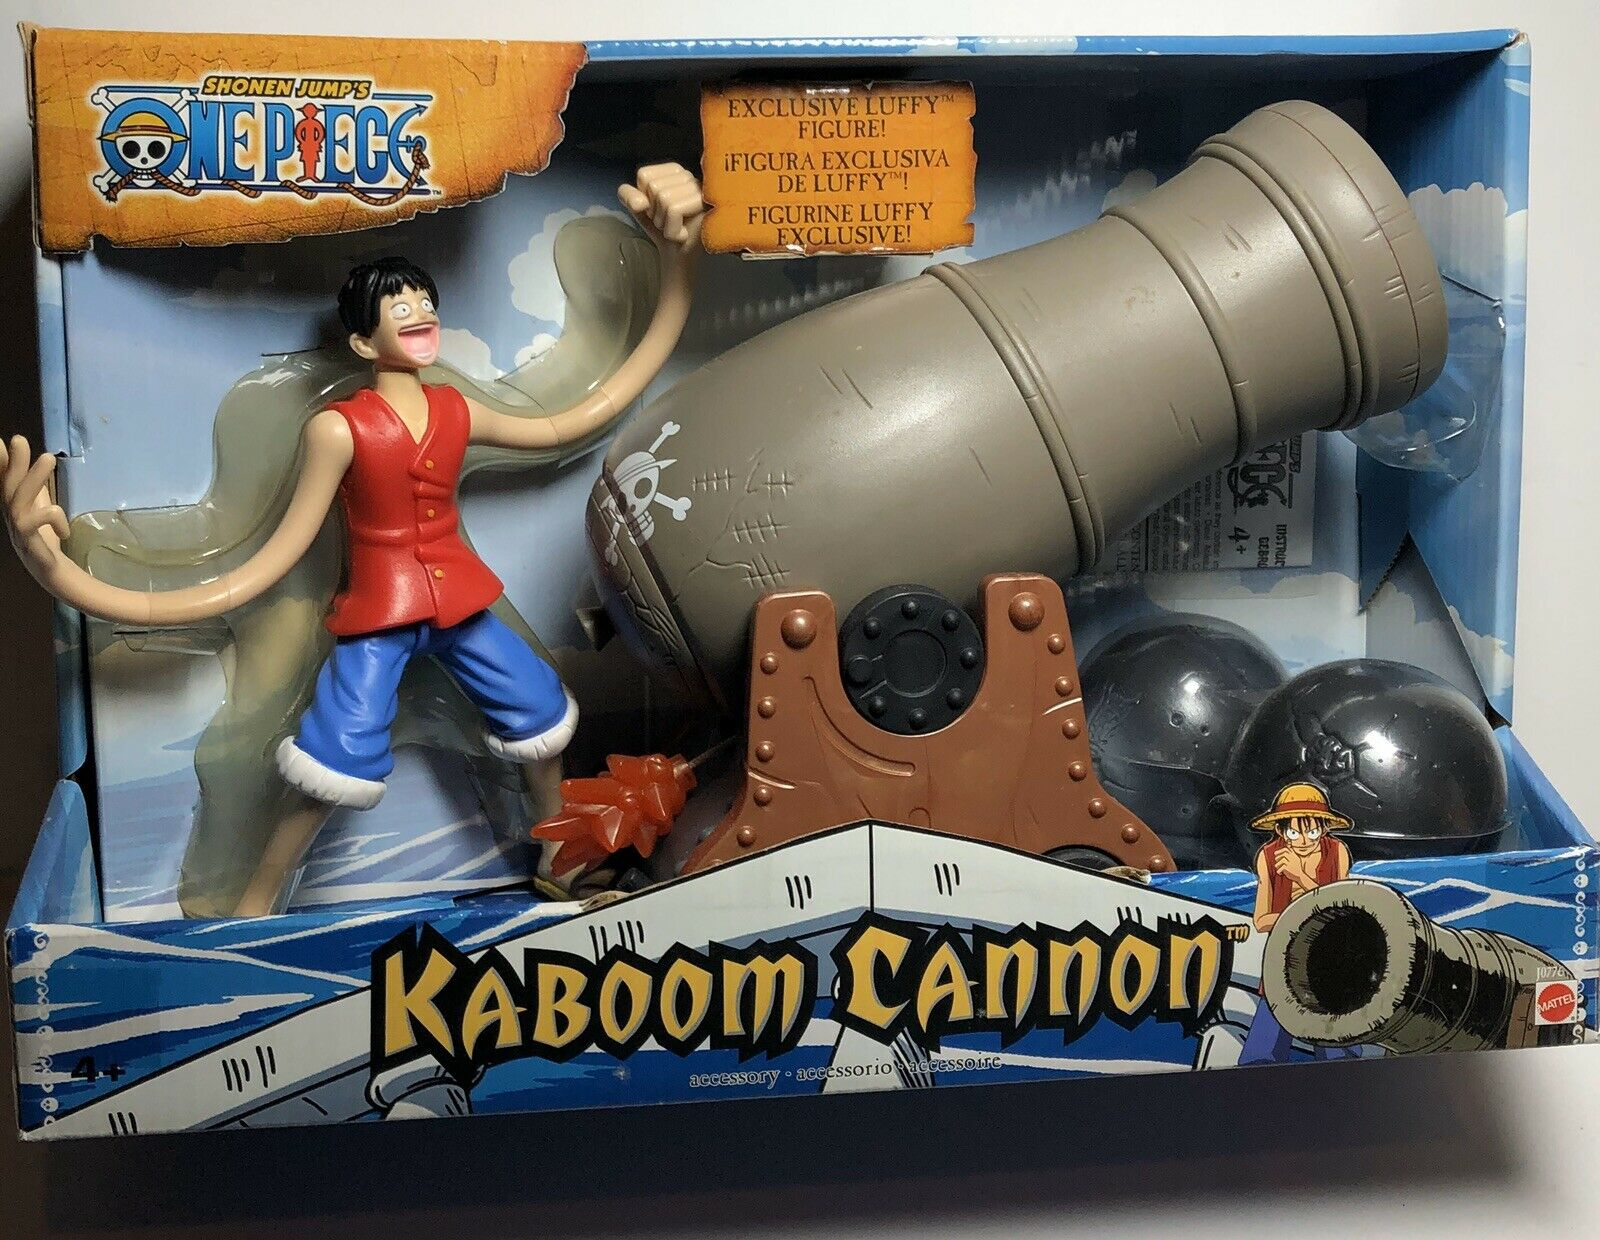 Shonen Jump One Piece Kaboom Cannon With Luffy cifra. nuovo.